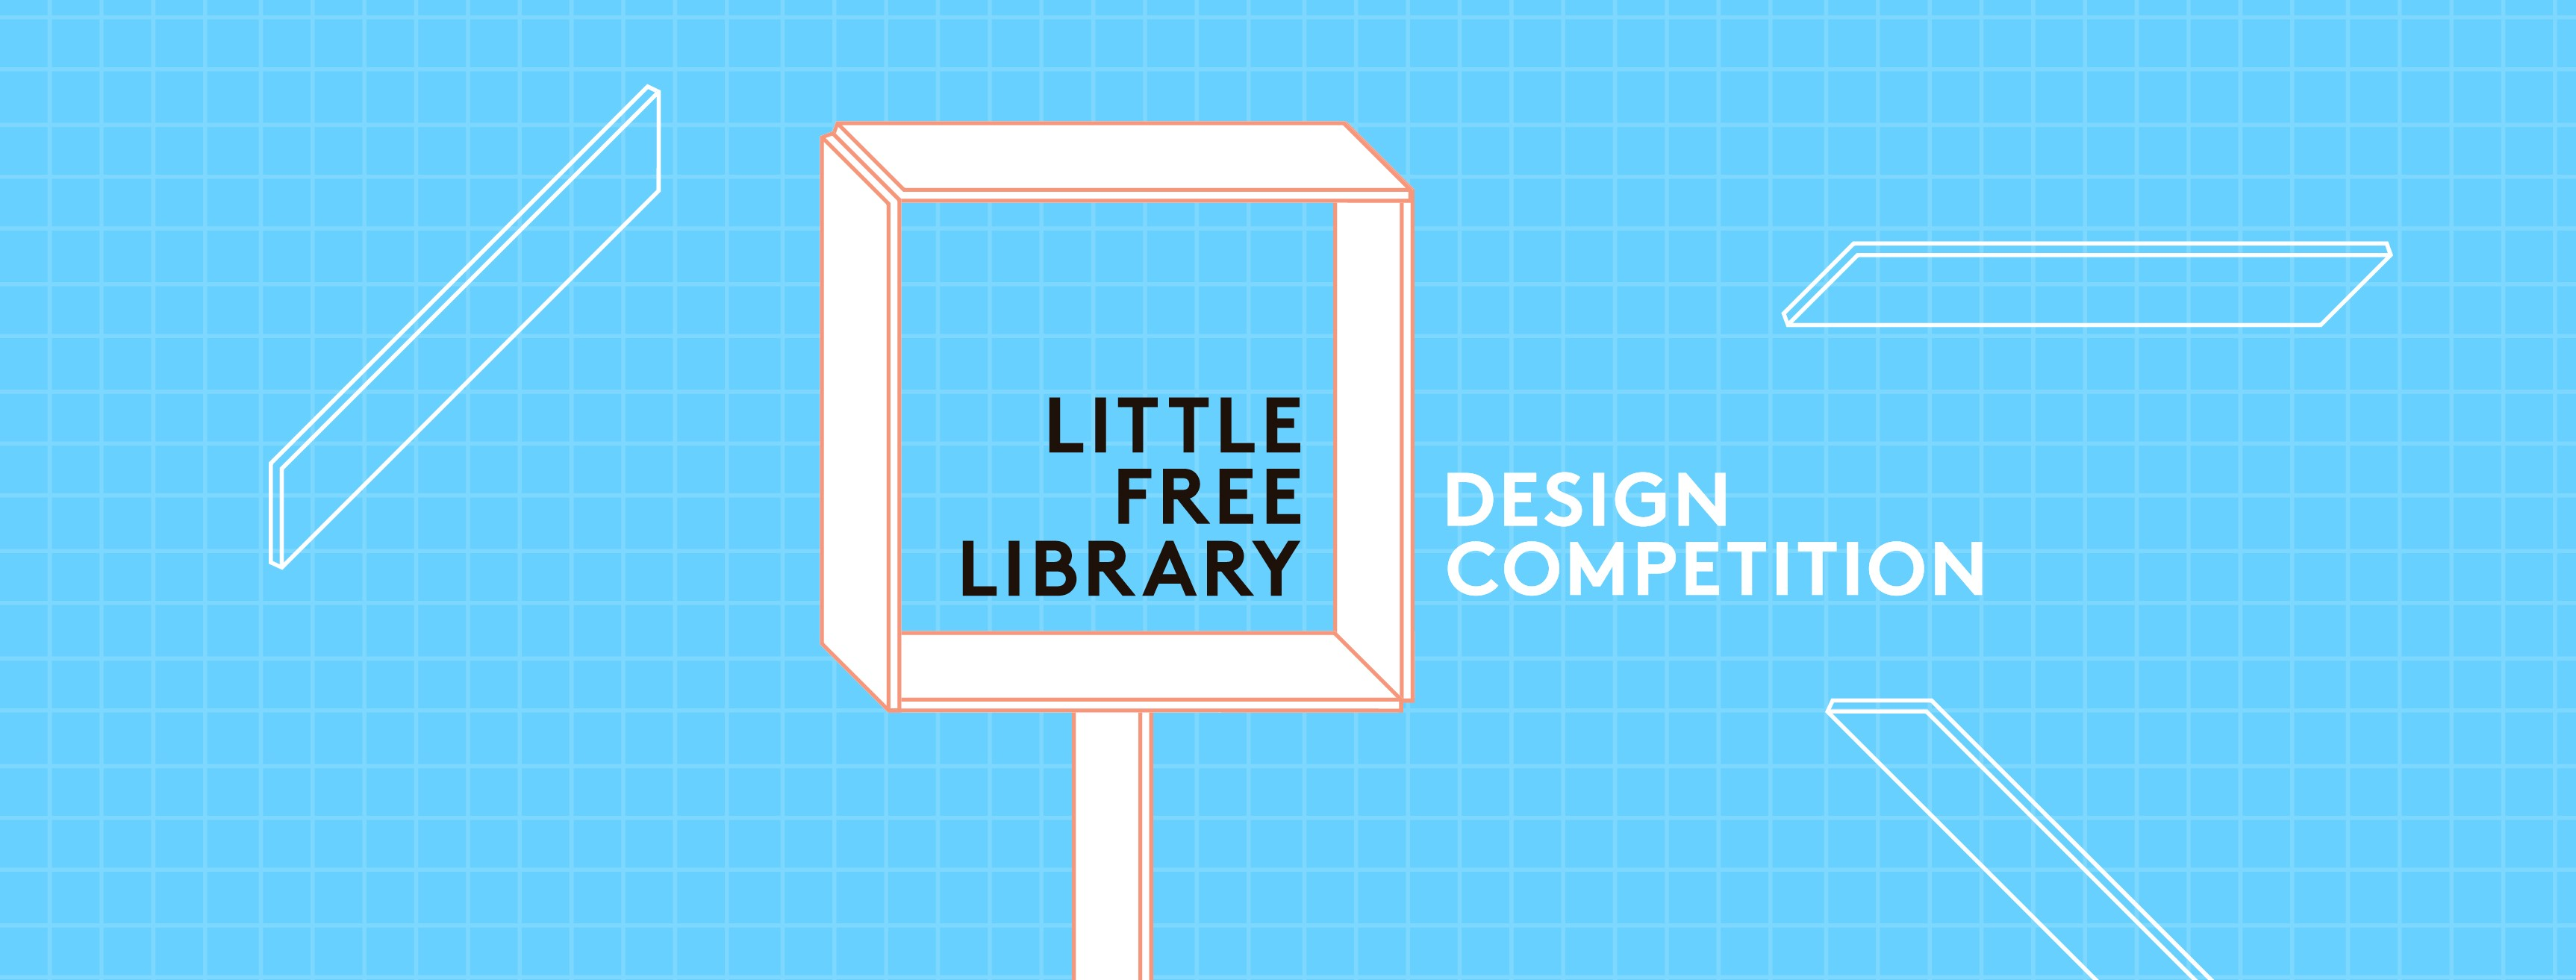 The Little Free Library Design Competition Open Book Medium